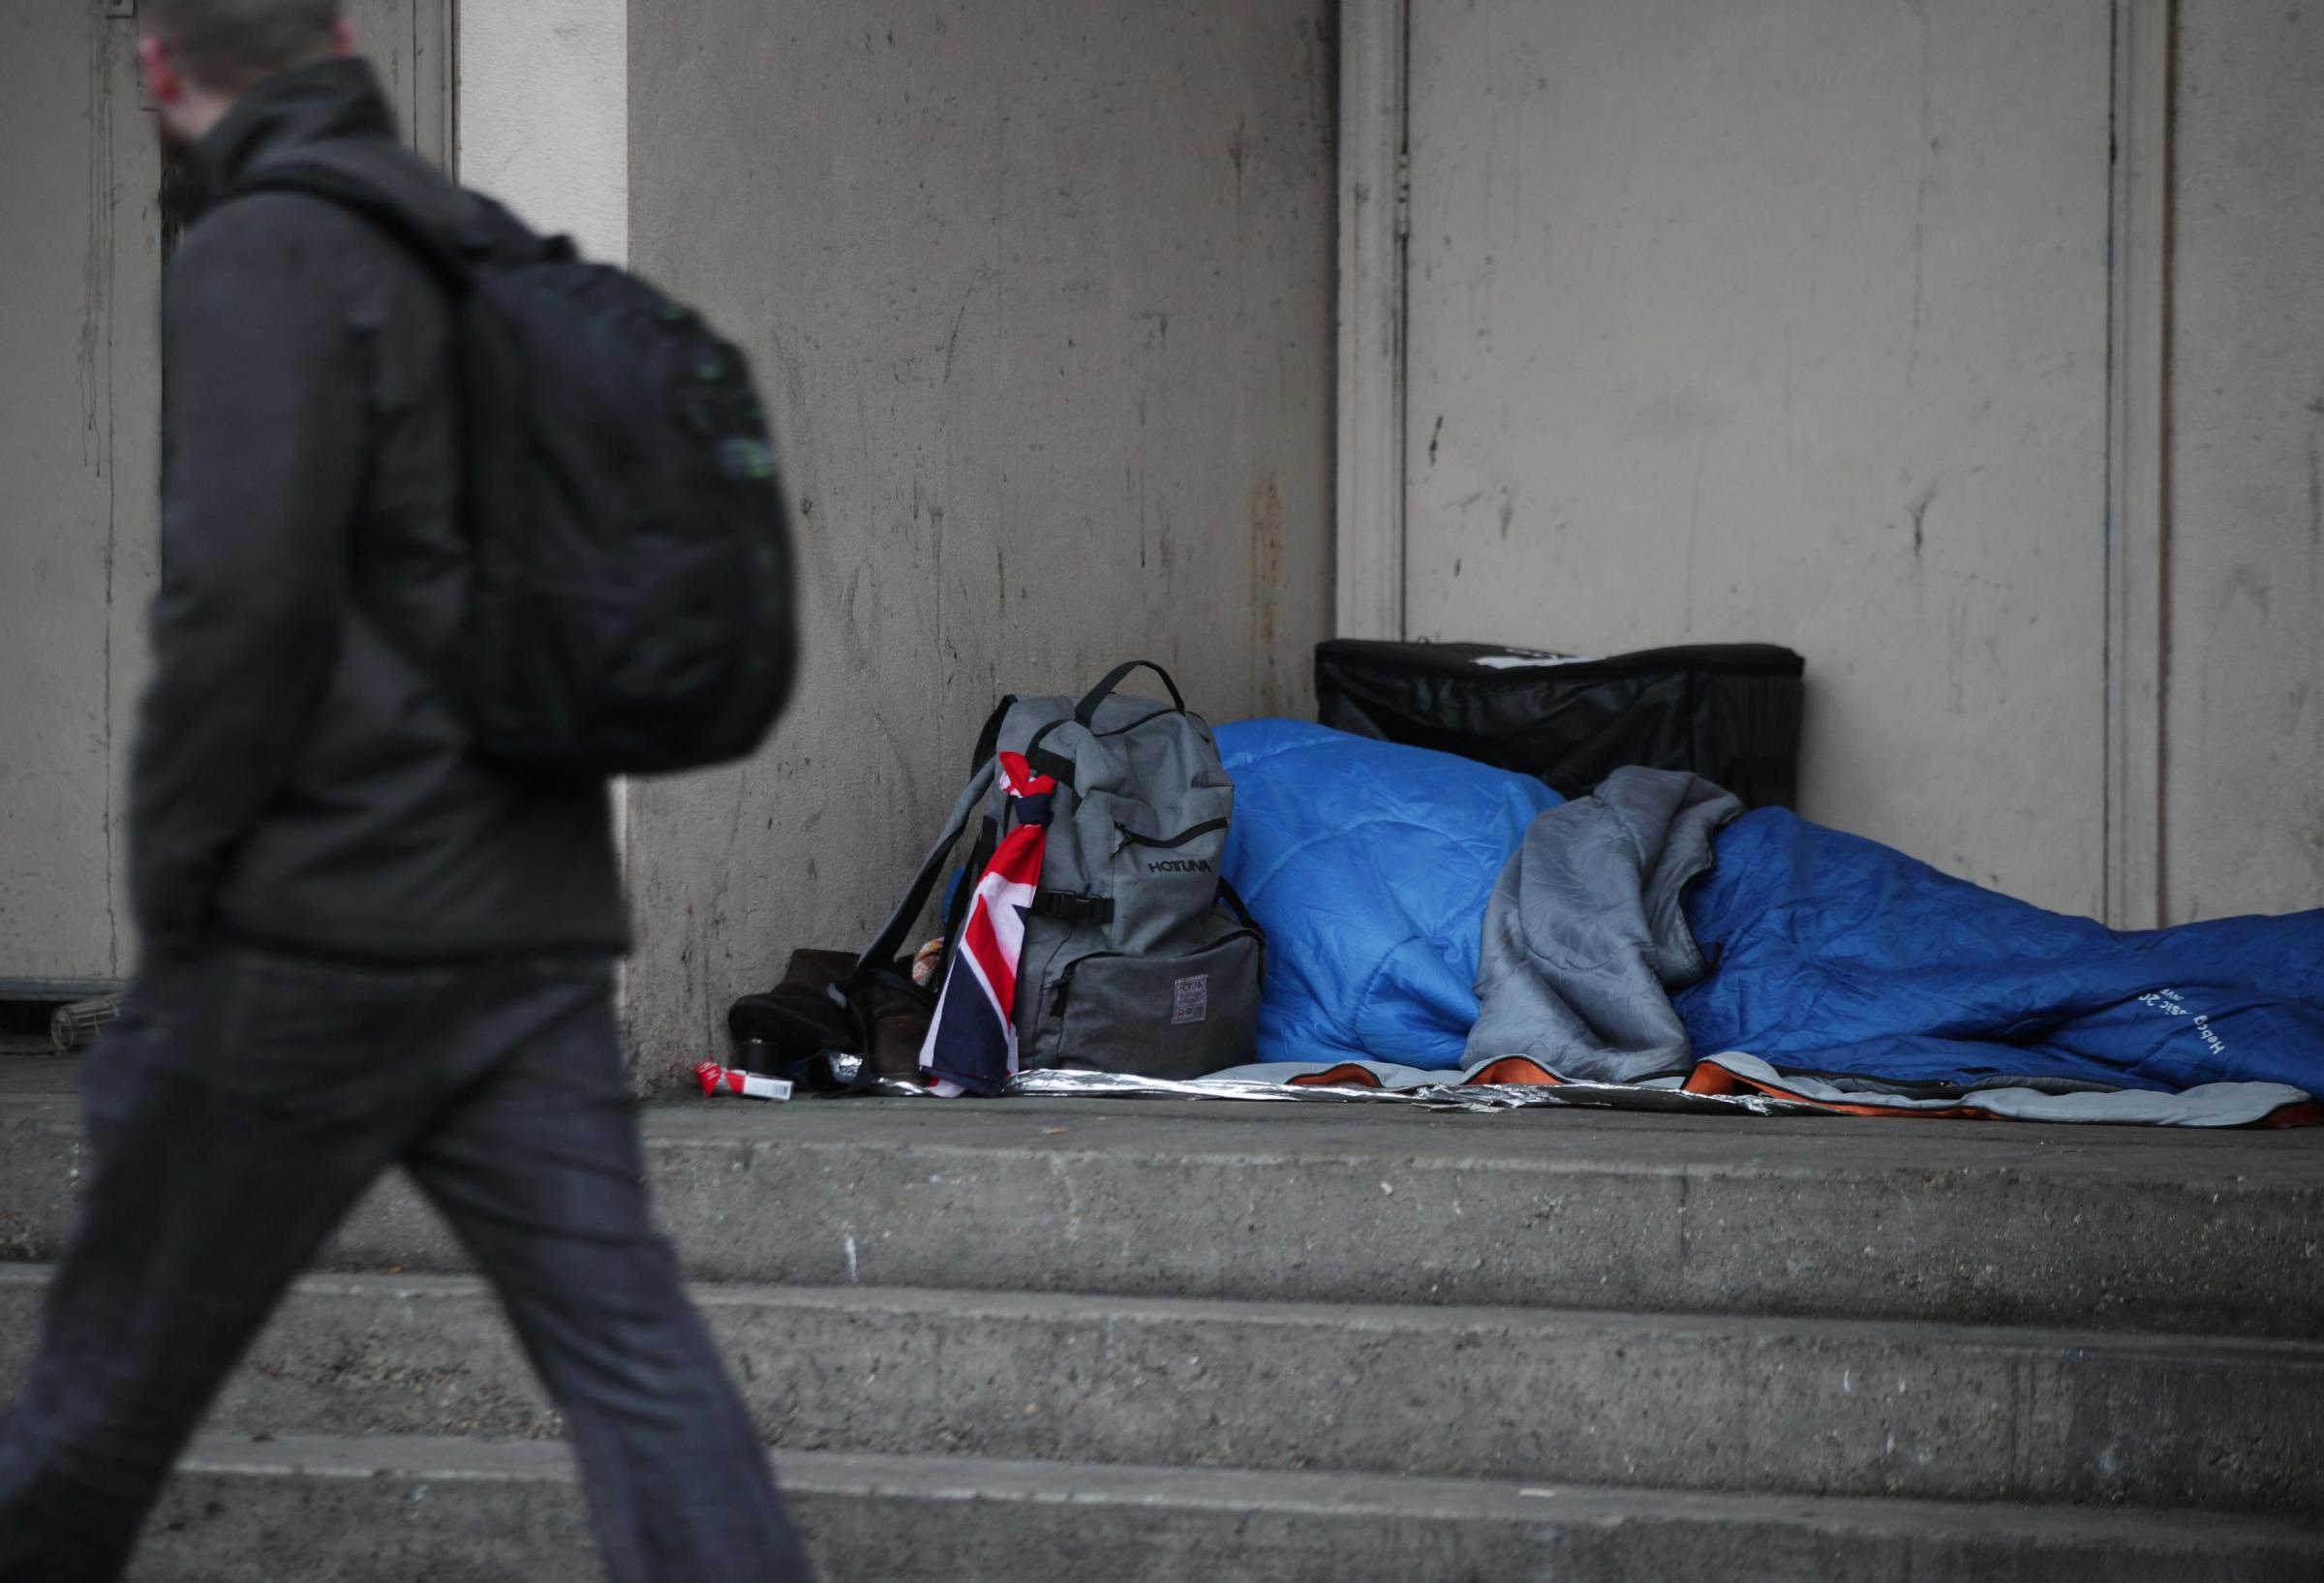 Homelessness causes 'huge pressure' on housing services